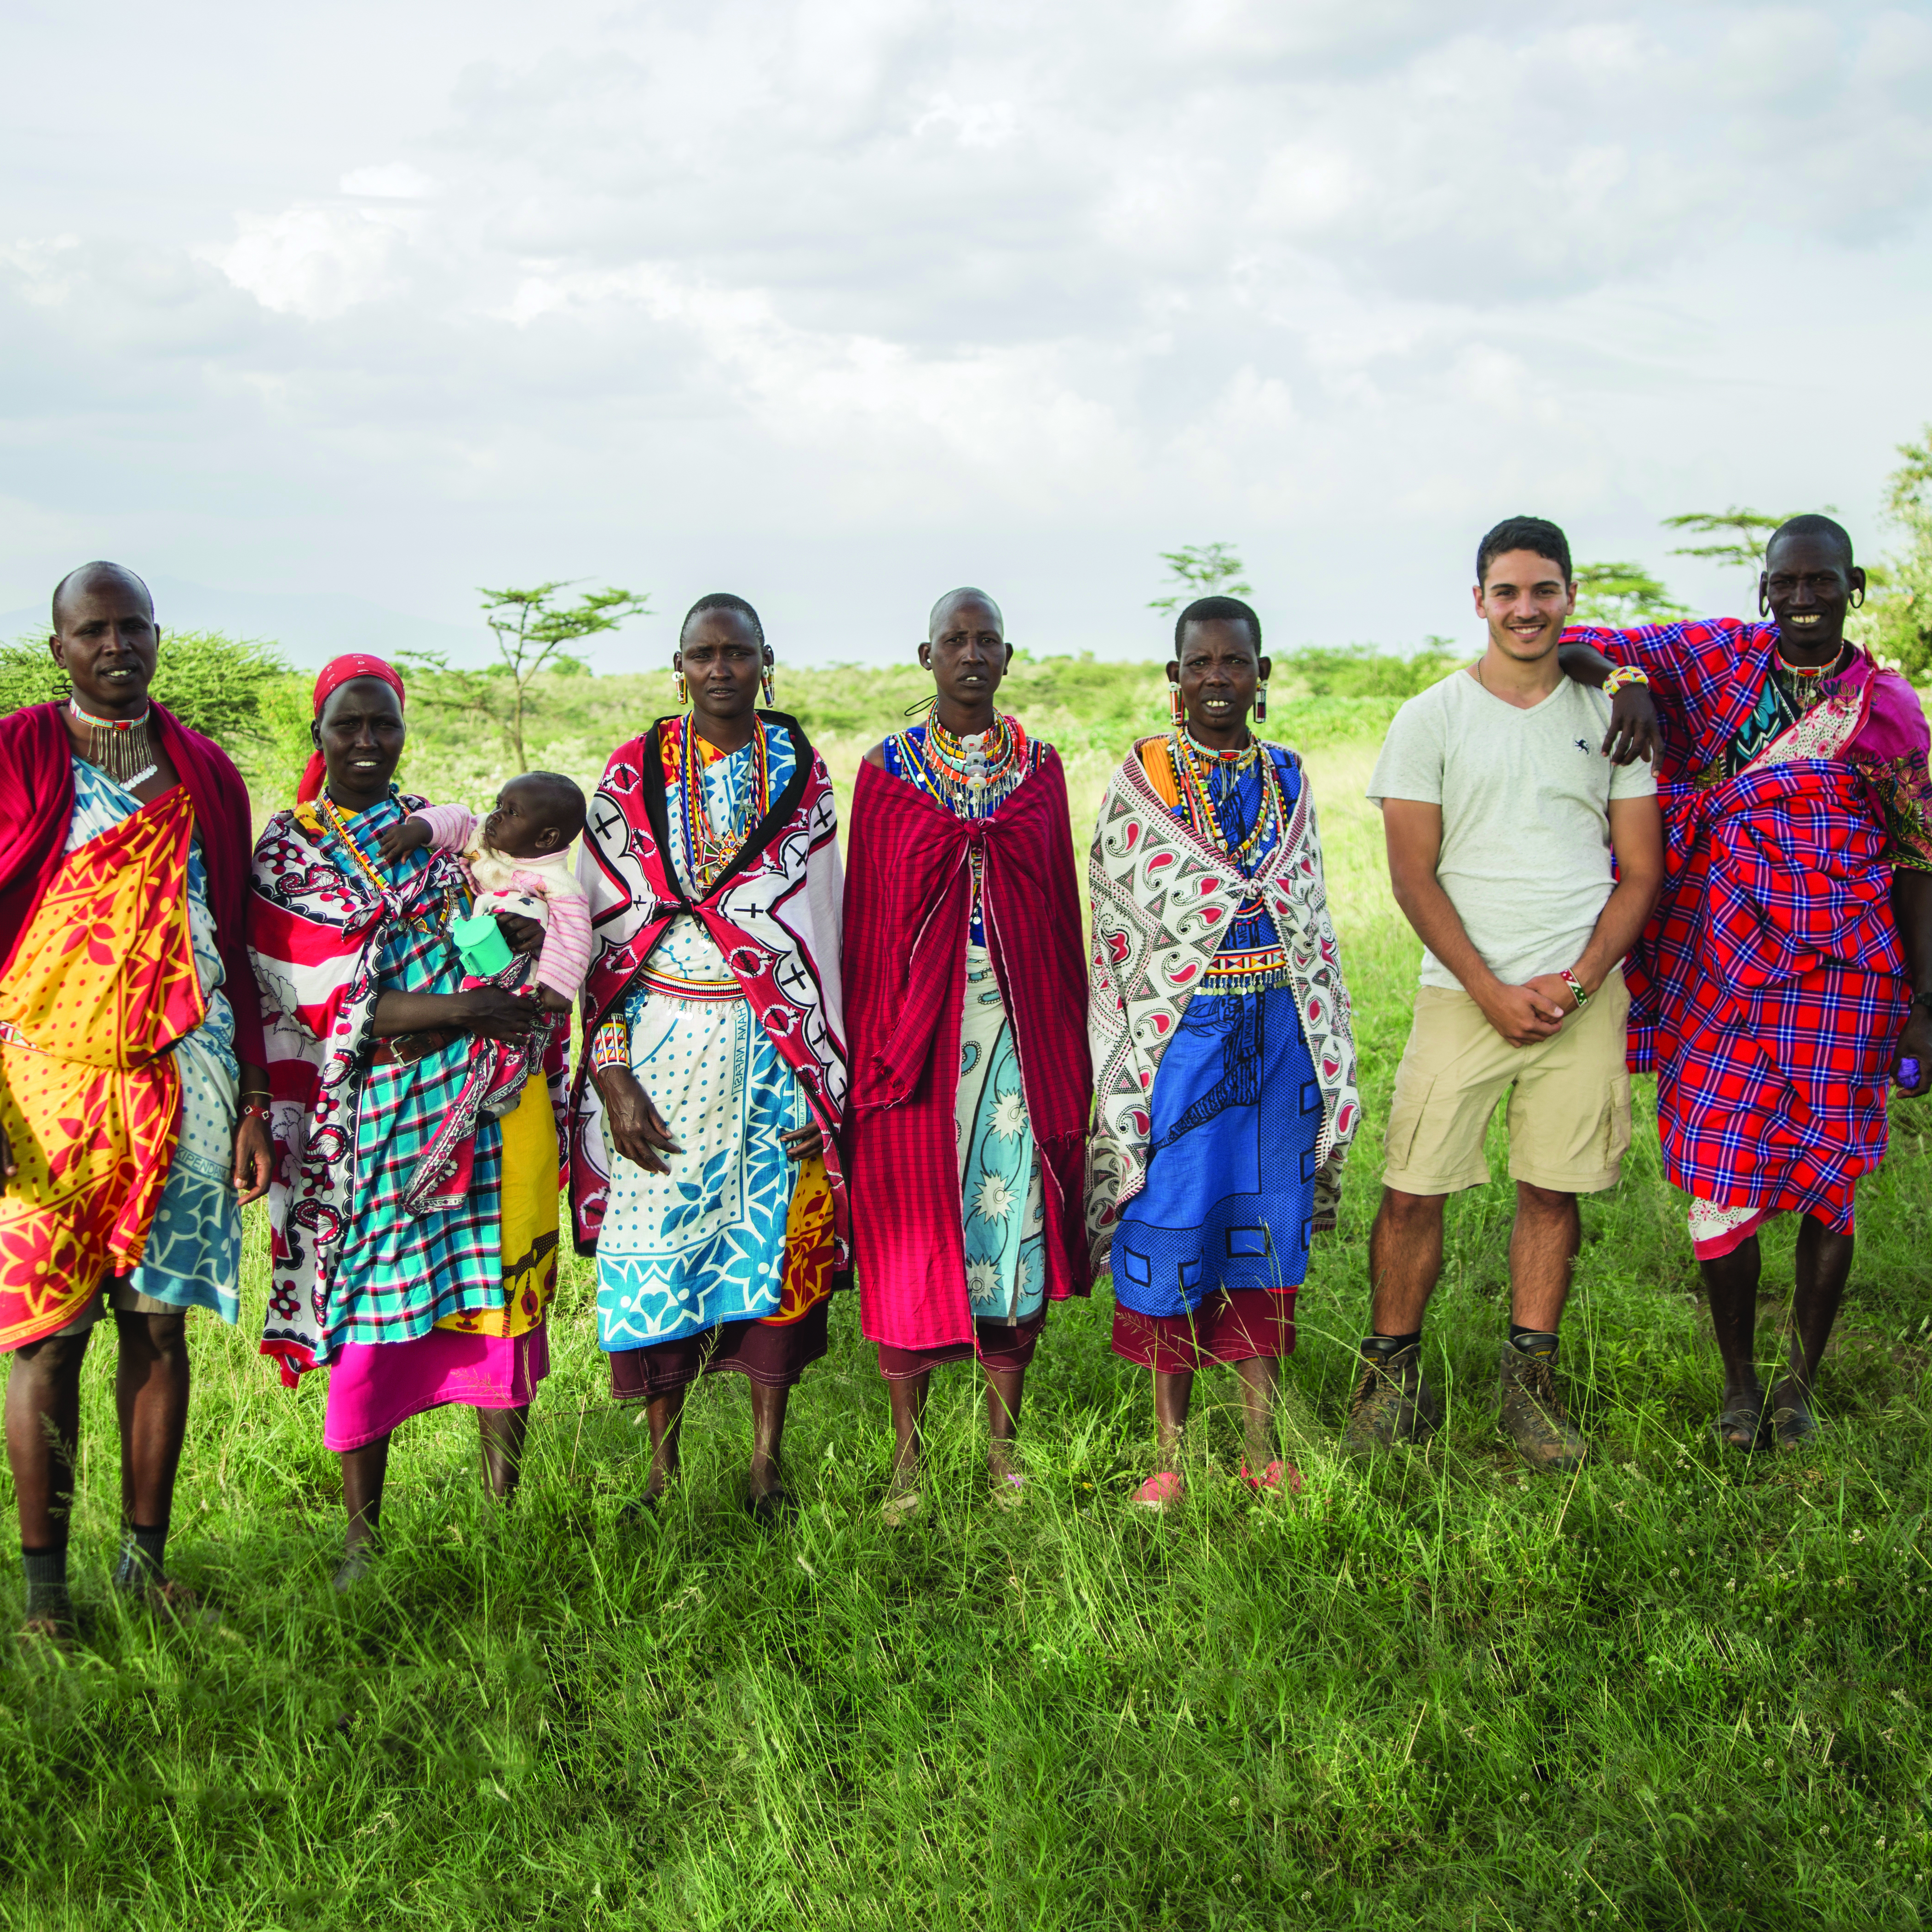 student standing with group of people in Africa from study abroad/volunteer experience